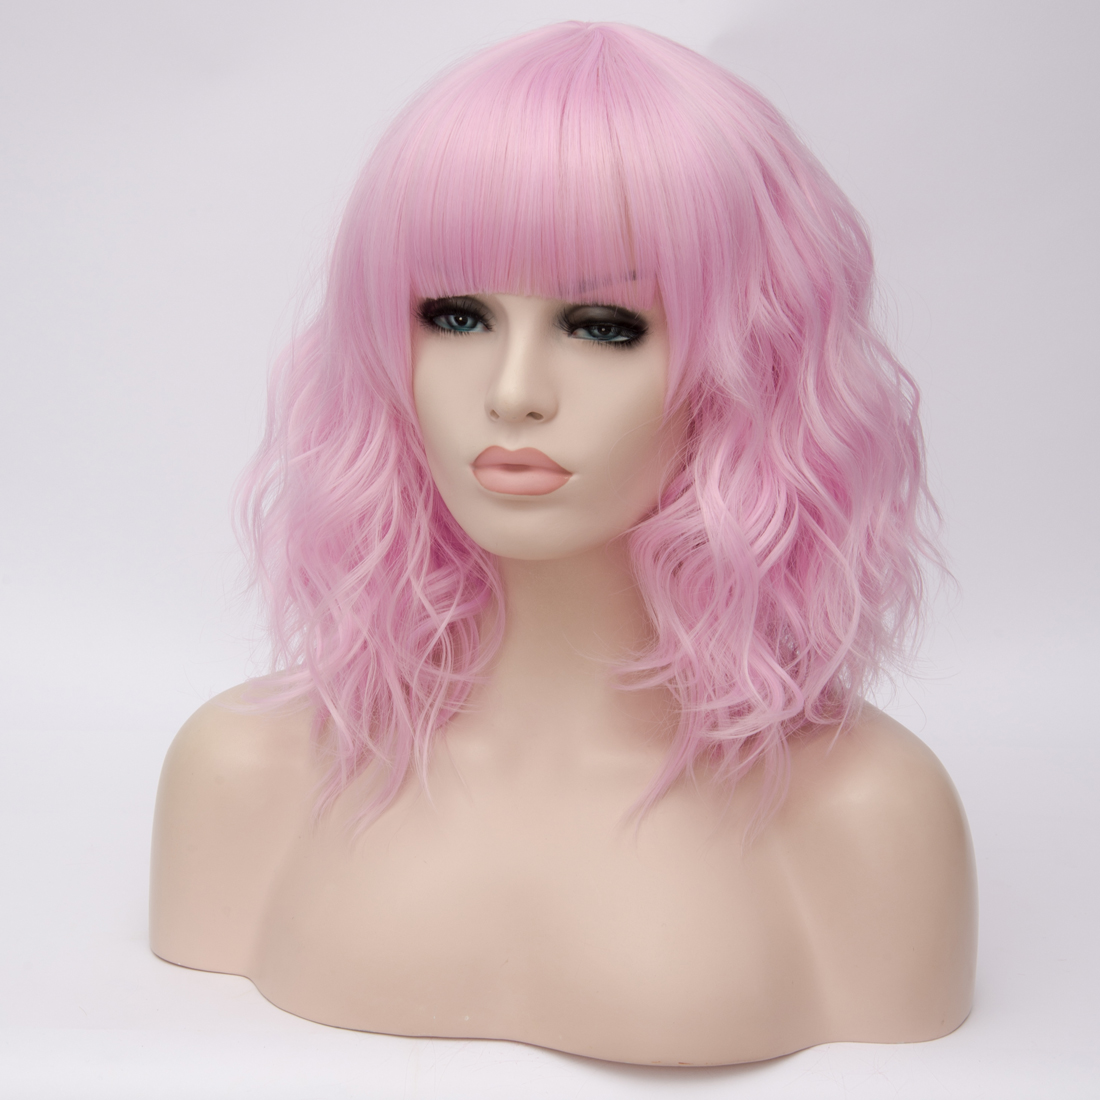 Hf2b8b875c5b84af5a30b087ea4280959m - Similler Short Synthetic Wig for Women Cosplay Curly Hair Heat Resistance Ombre Color Blue Purple Pink Green Orange Two Tones